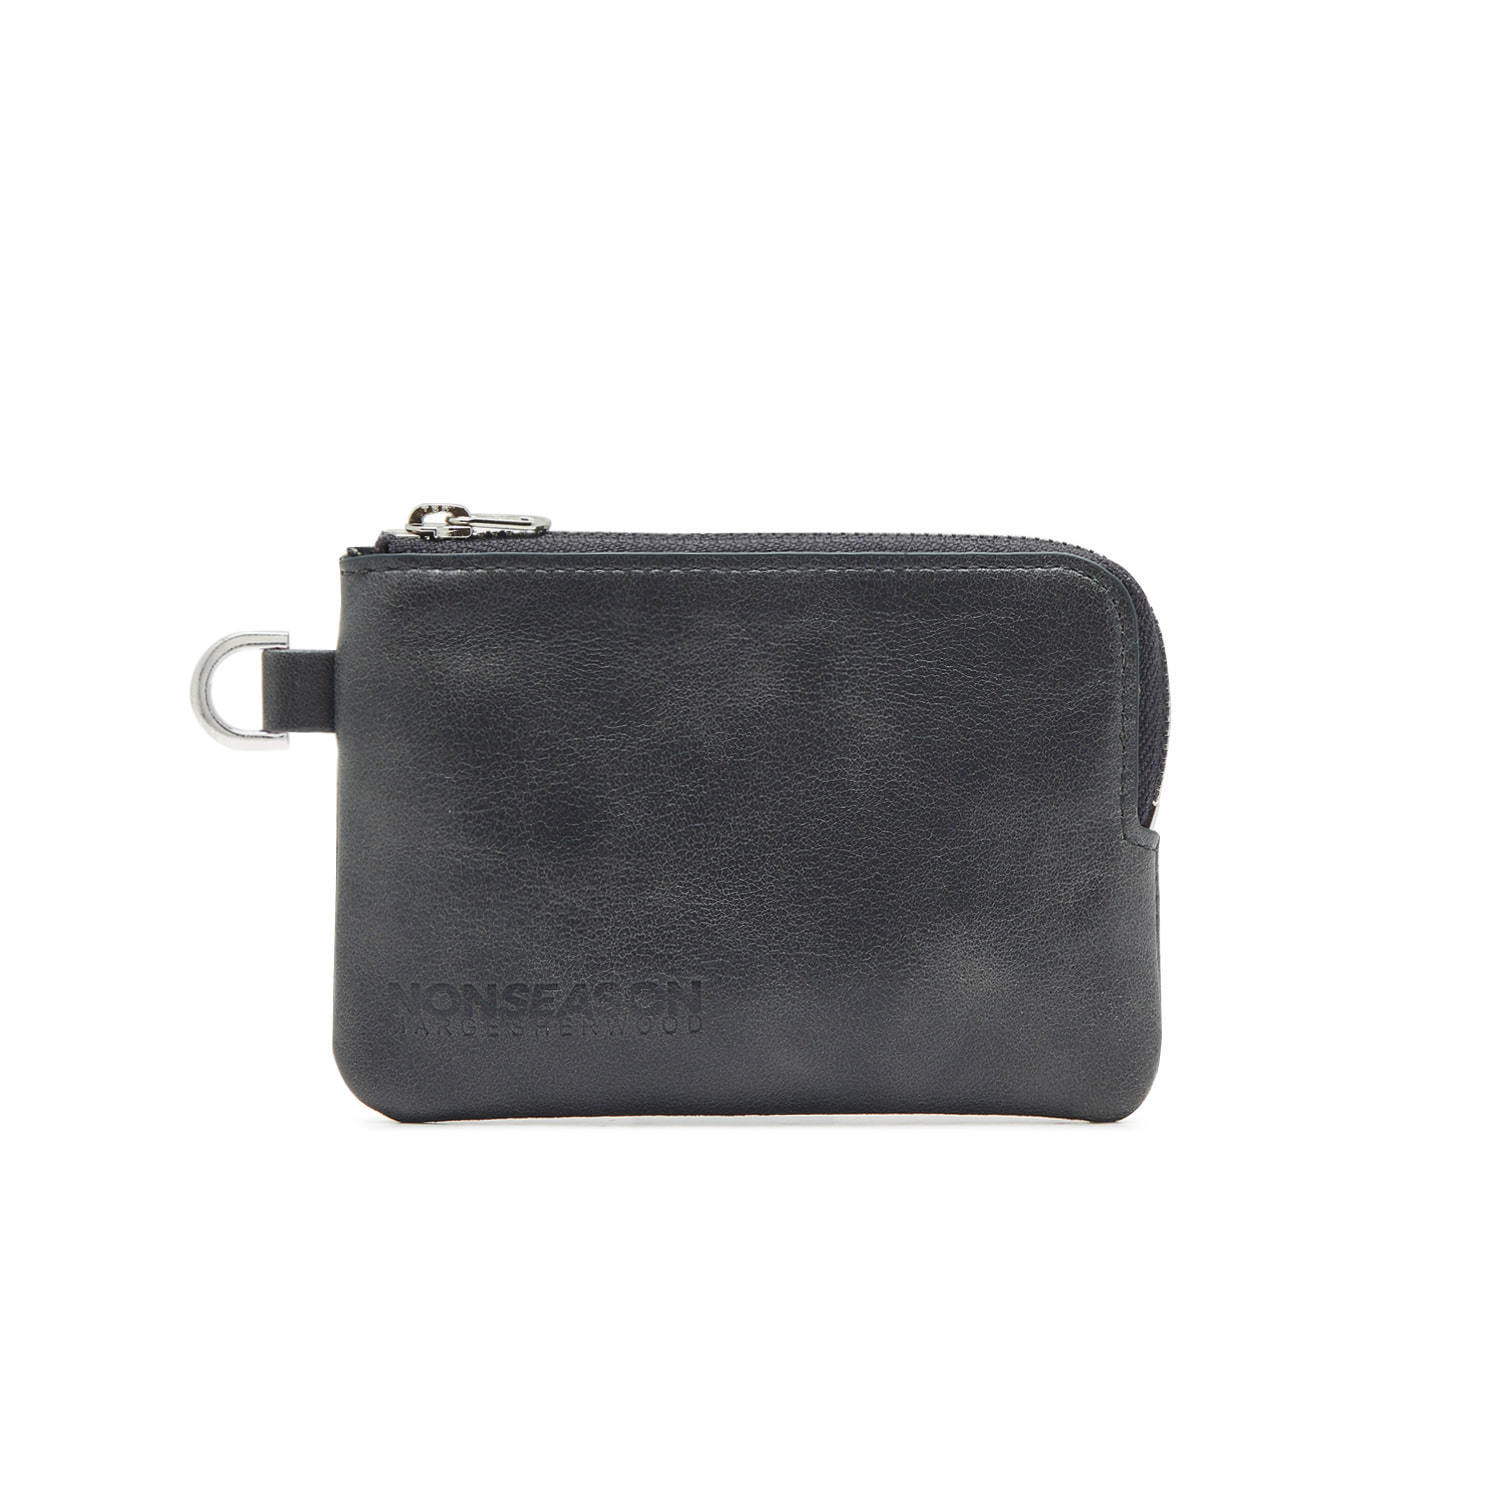 shop marge sherwood wallets & card holders